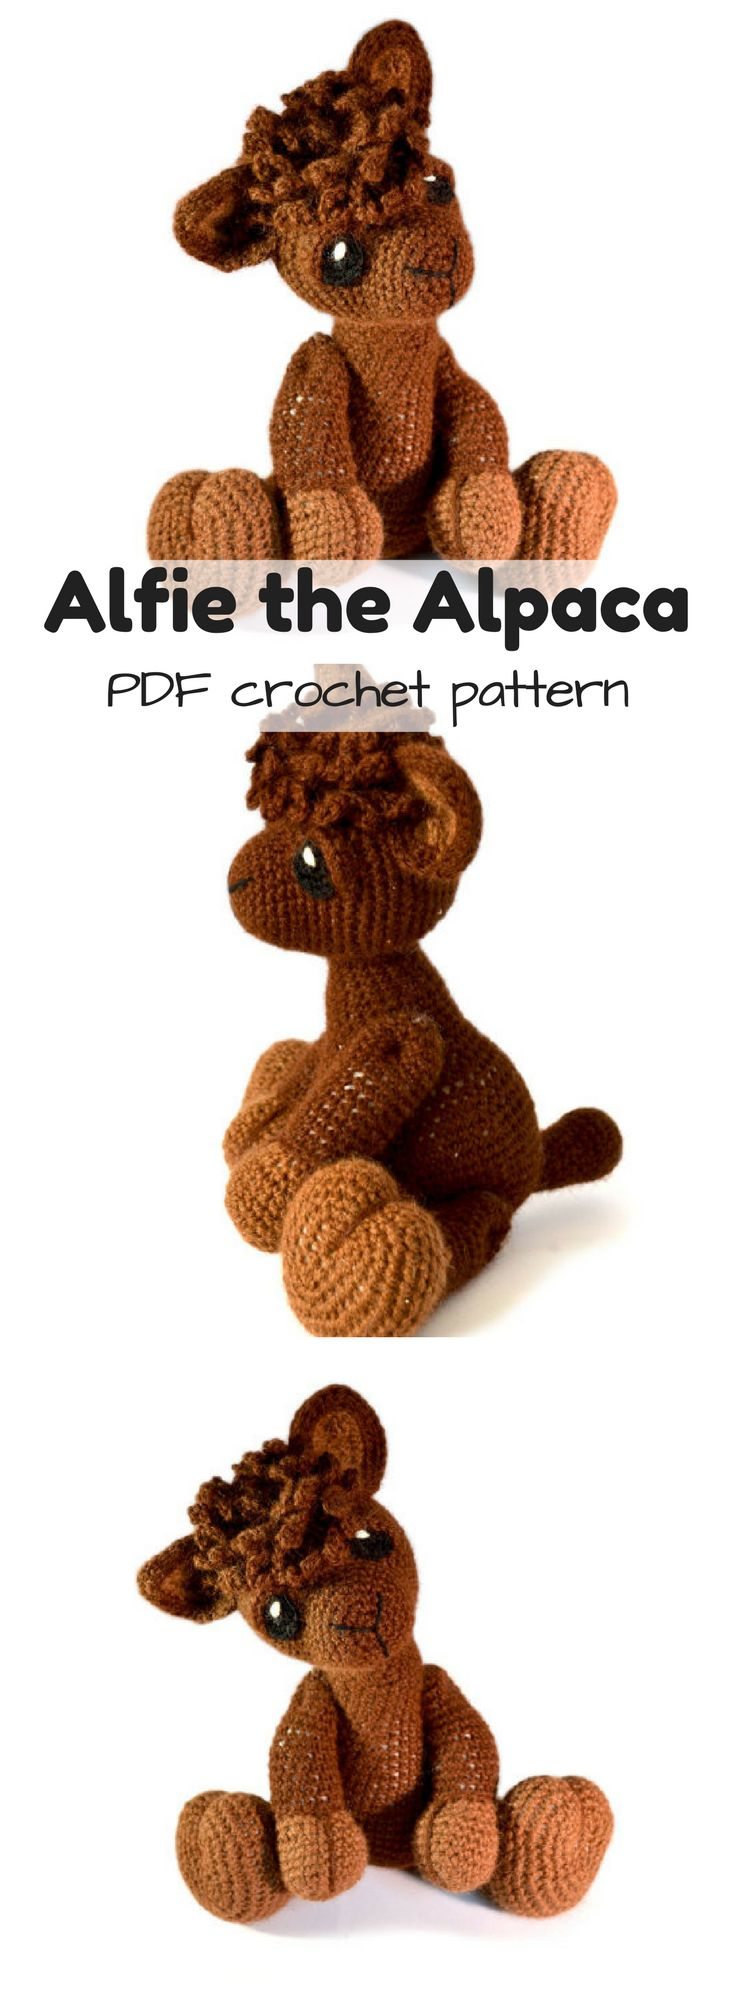 Alfie the Alpaca pdf crochet pattern for this unique stuffed animal toy. Love that you can just download patterns instantly! Would be neat made in alpaca yarn! #etsy #ad